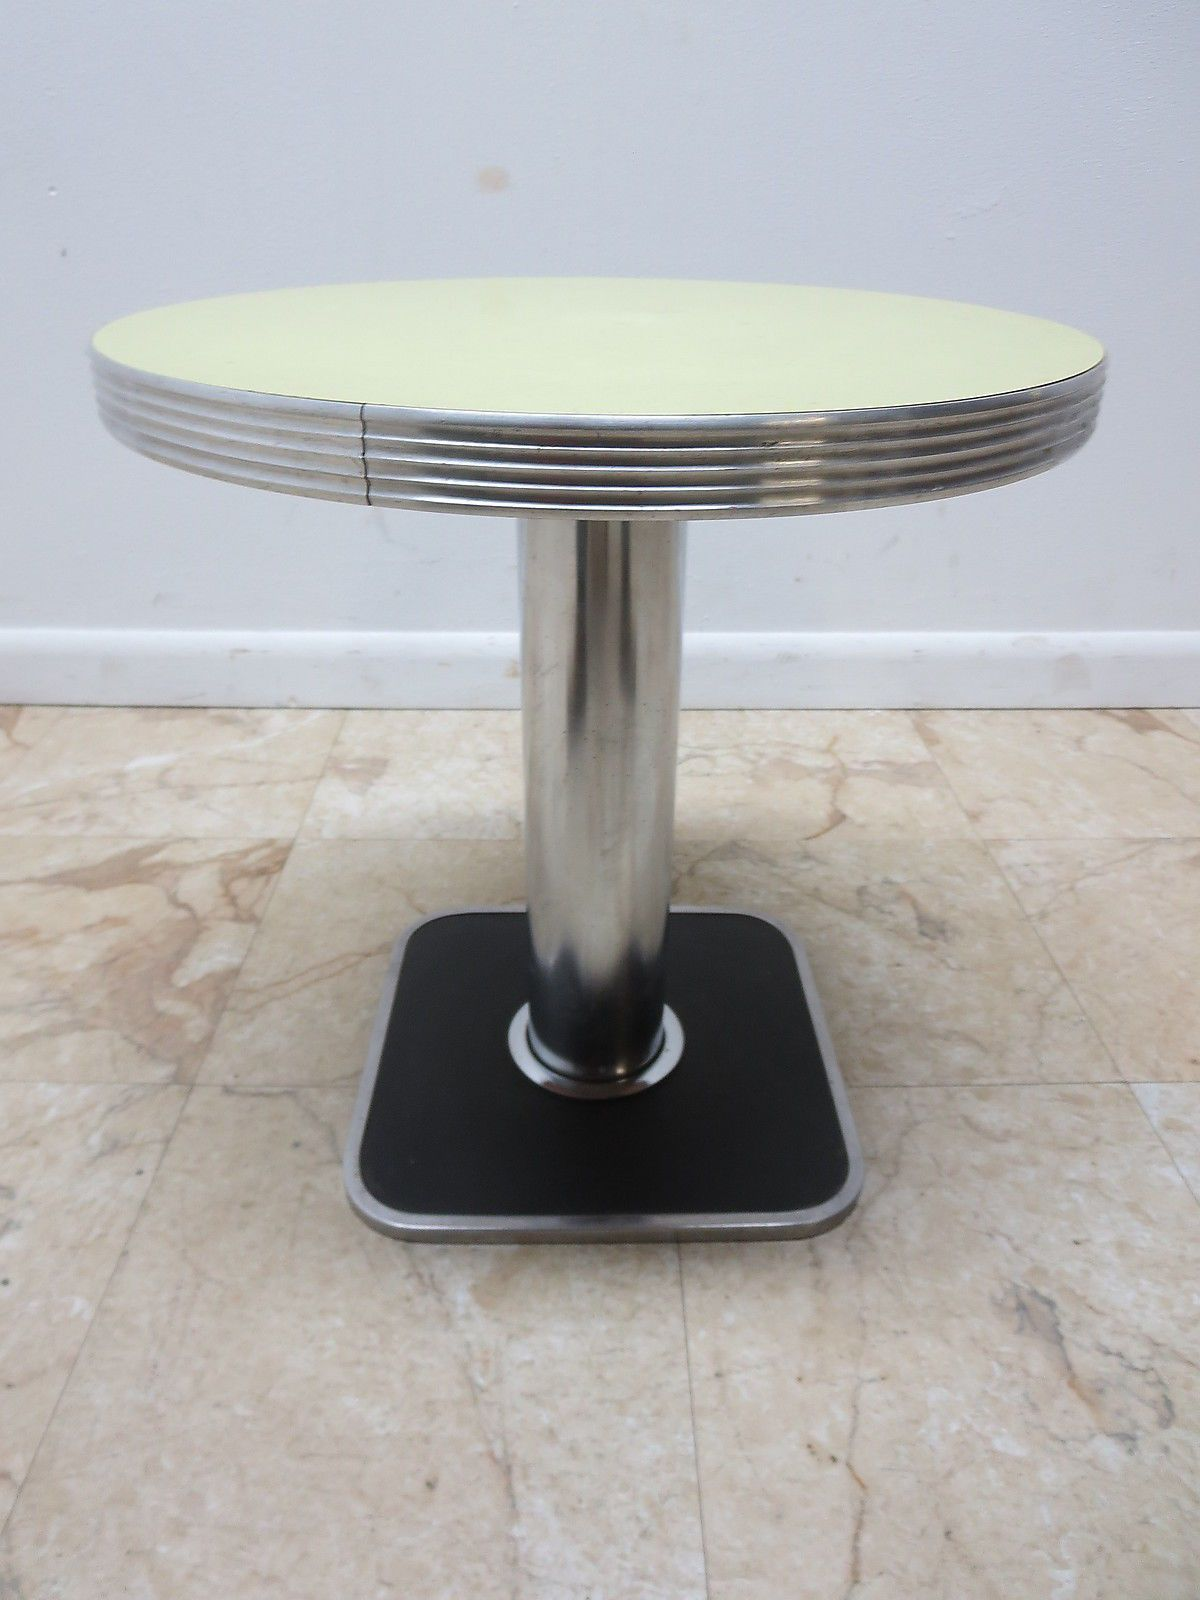 Captivating 1950u0027s Soda Shop Chrome Formica Lamp End Table Pedestal Ice Cream Parlor A  | EBay